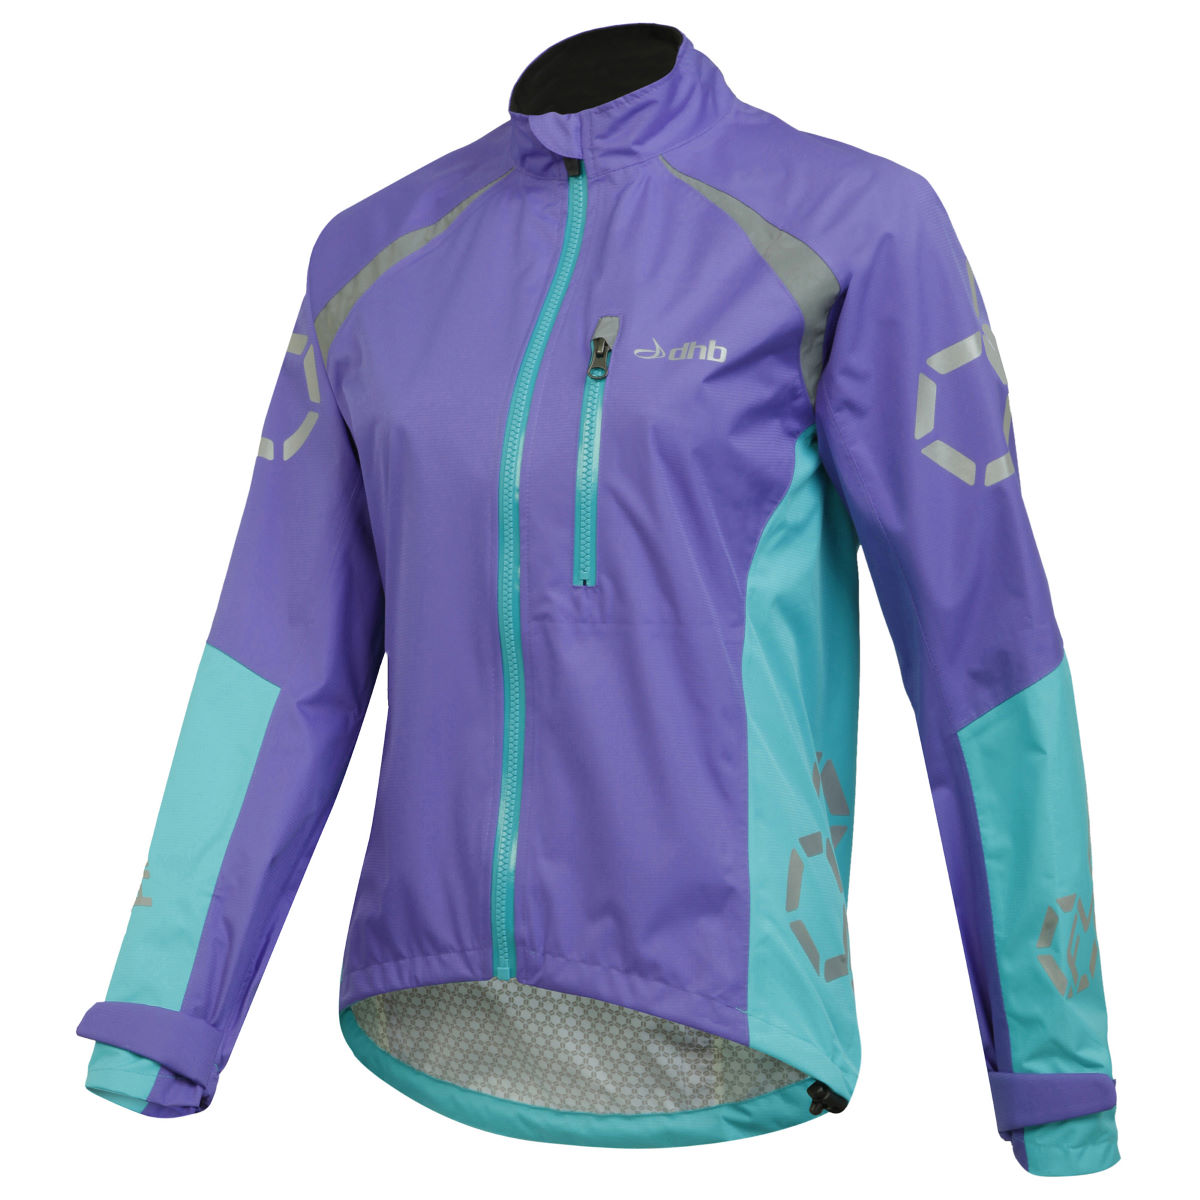 dhb Flashlight Womens Waterproof Jacket   Cycling Waterproof Jackets